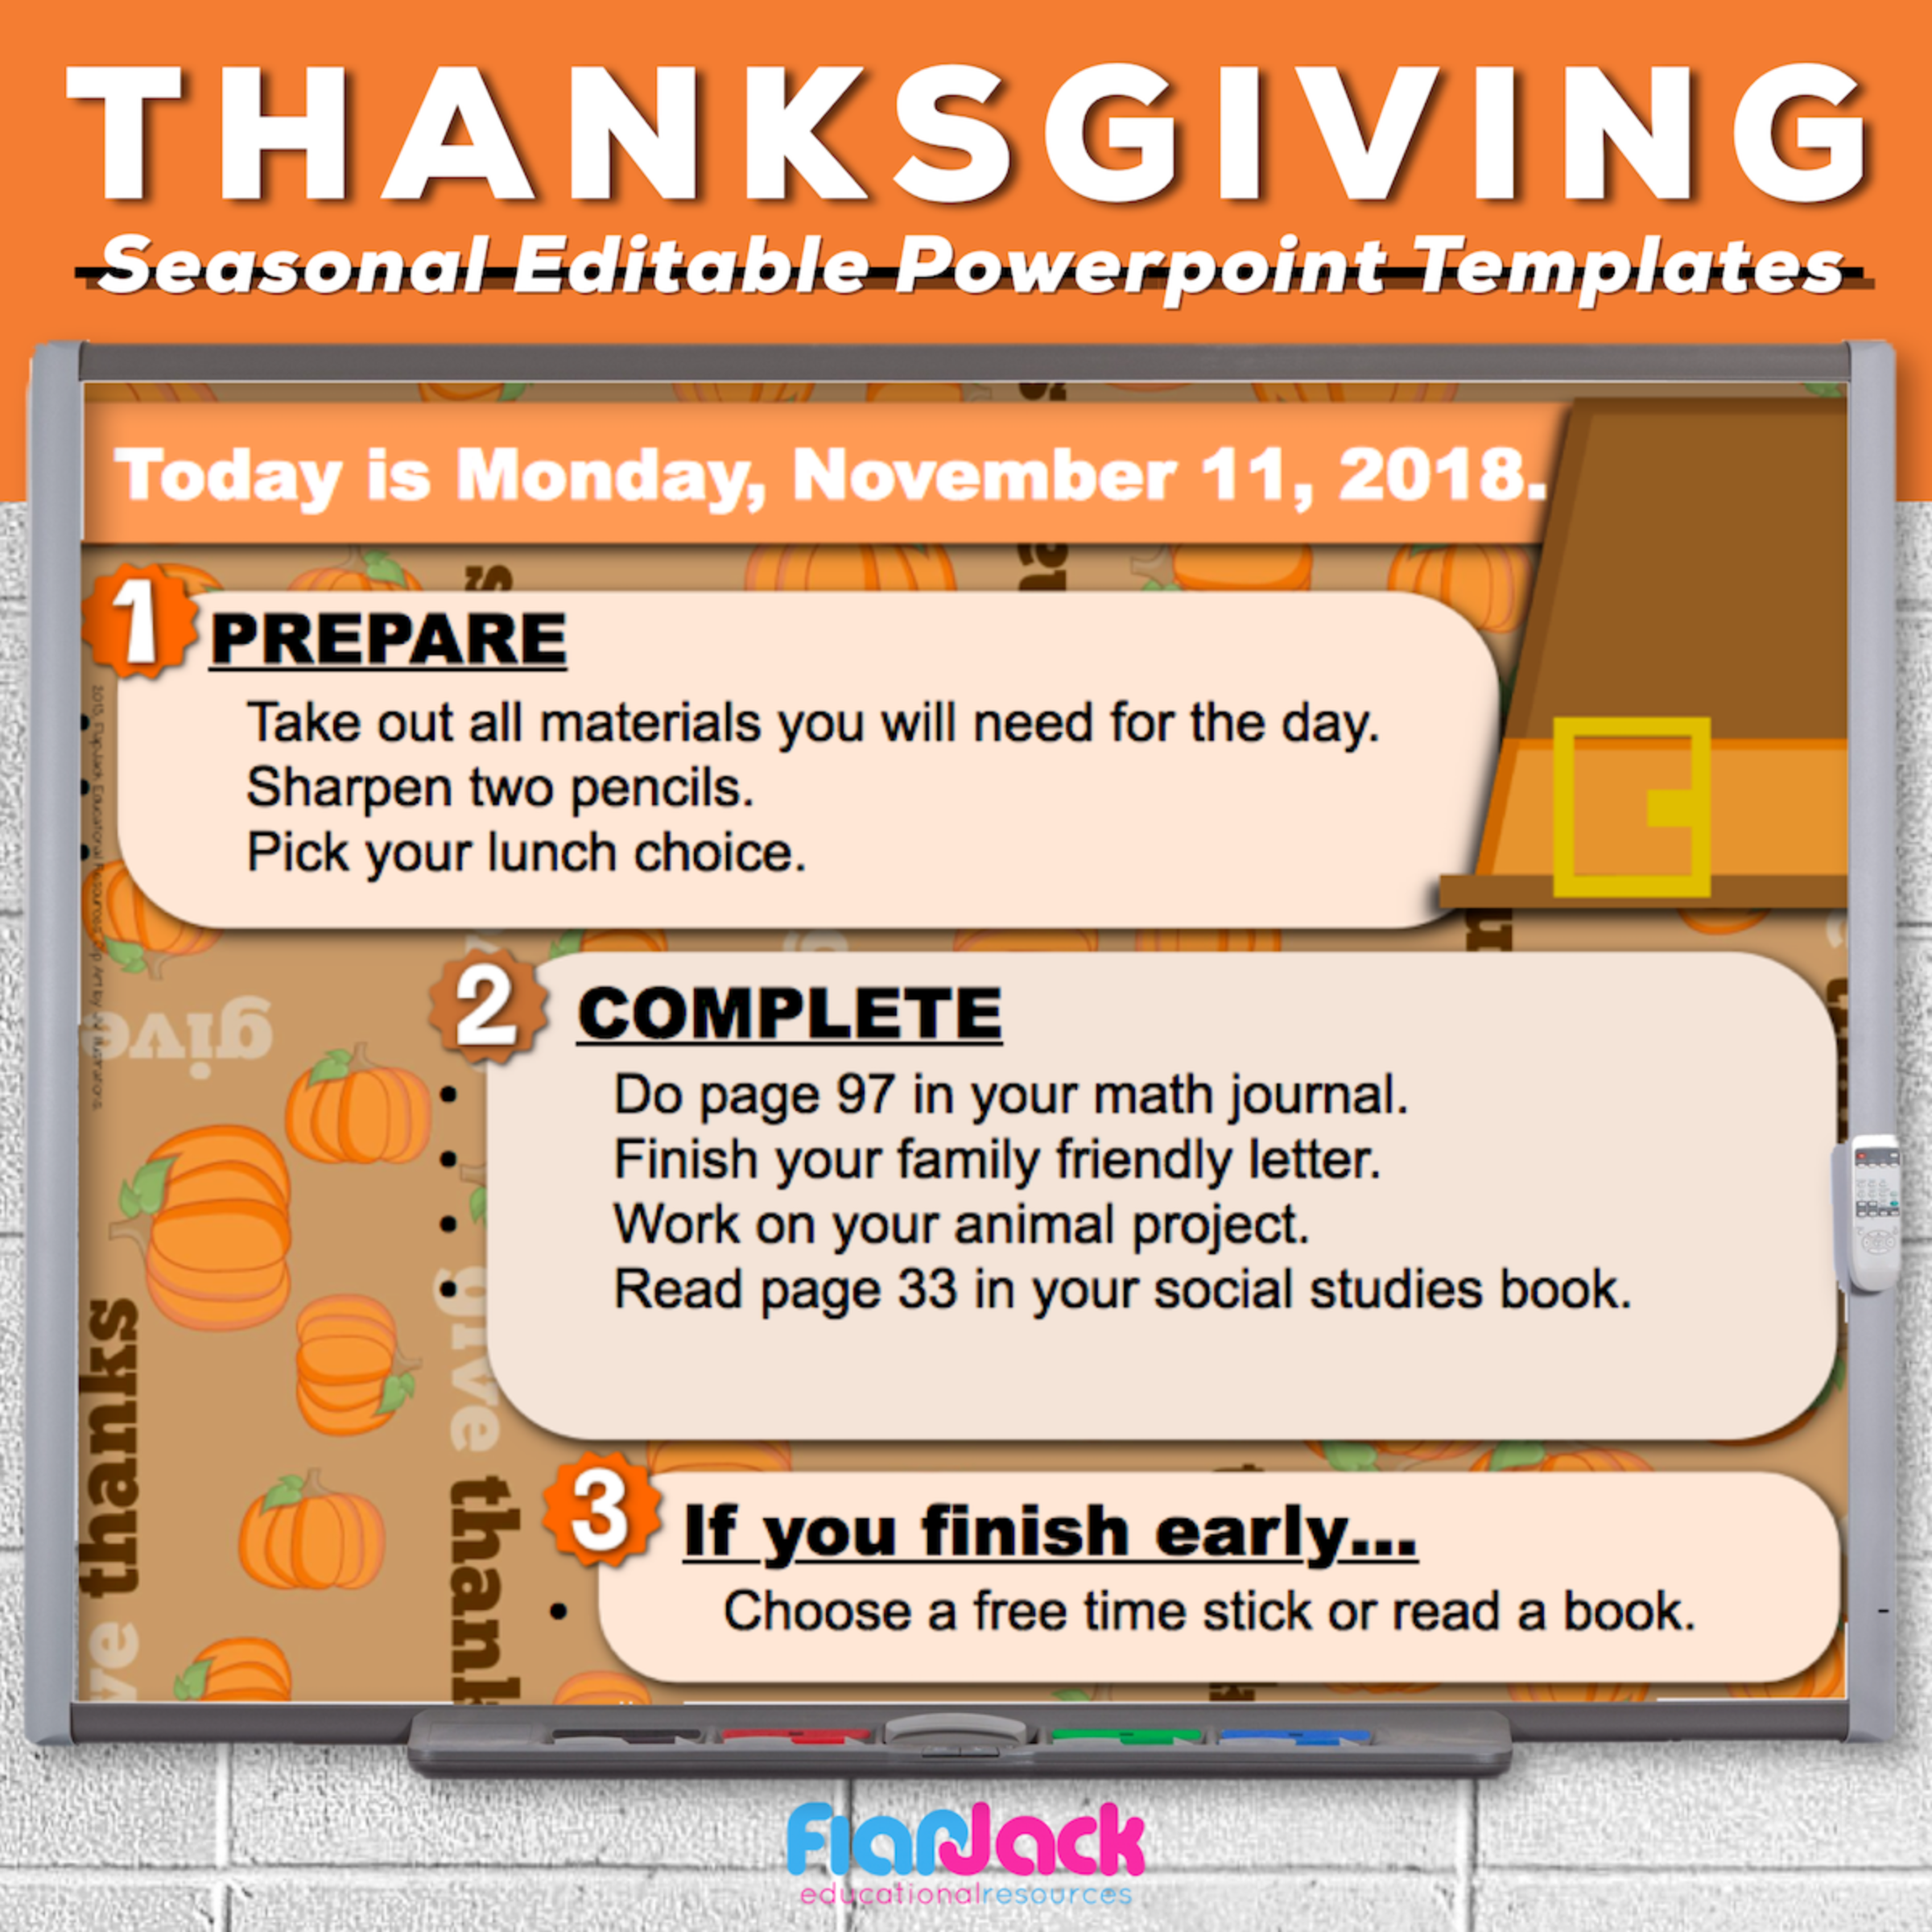 Thanksgiving Day Editable PowerPoint Templates